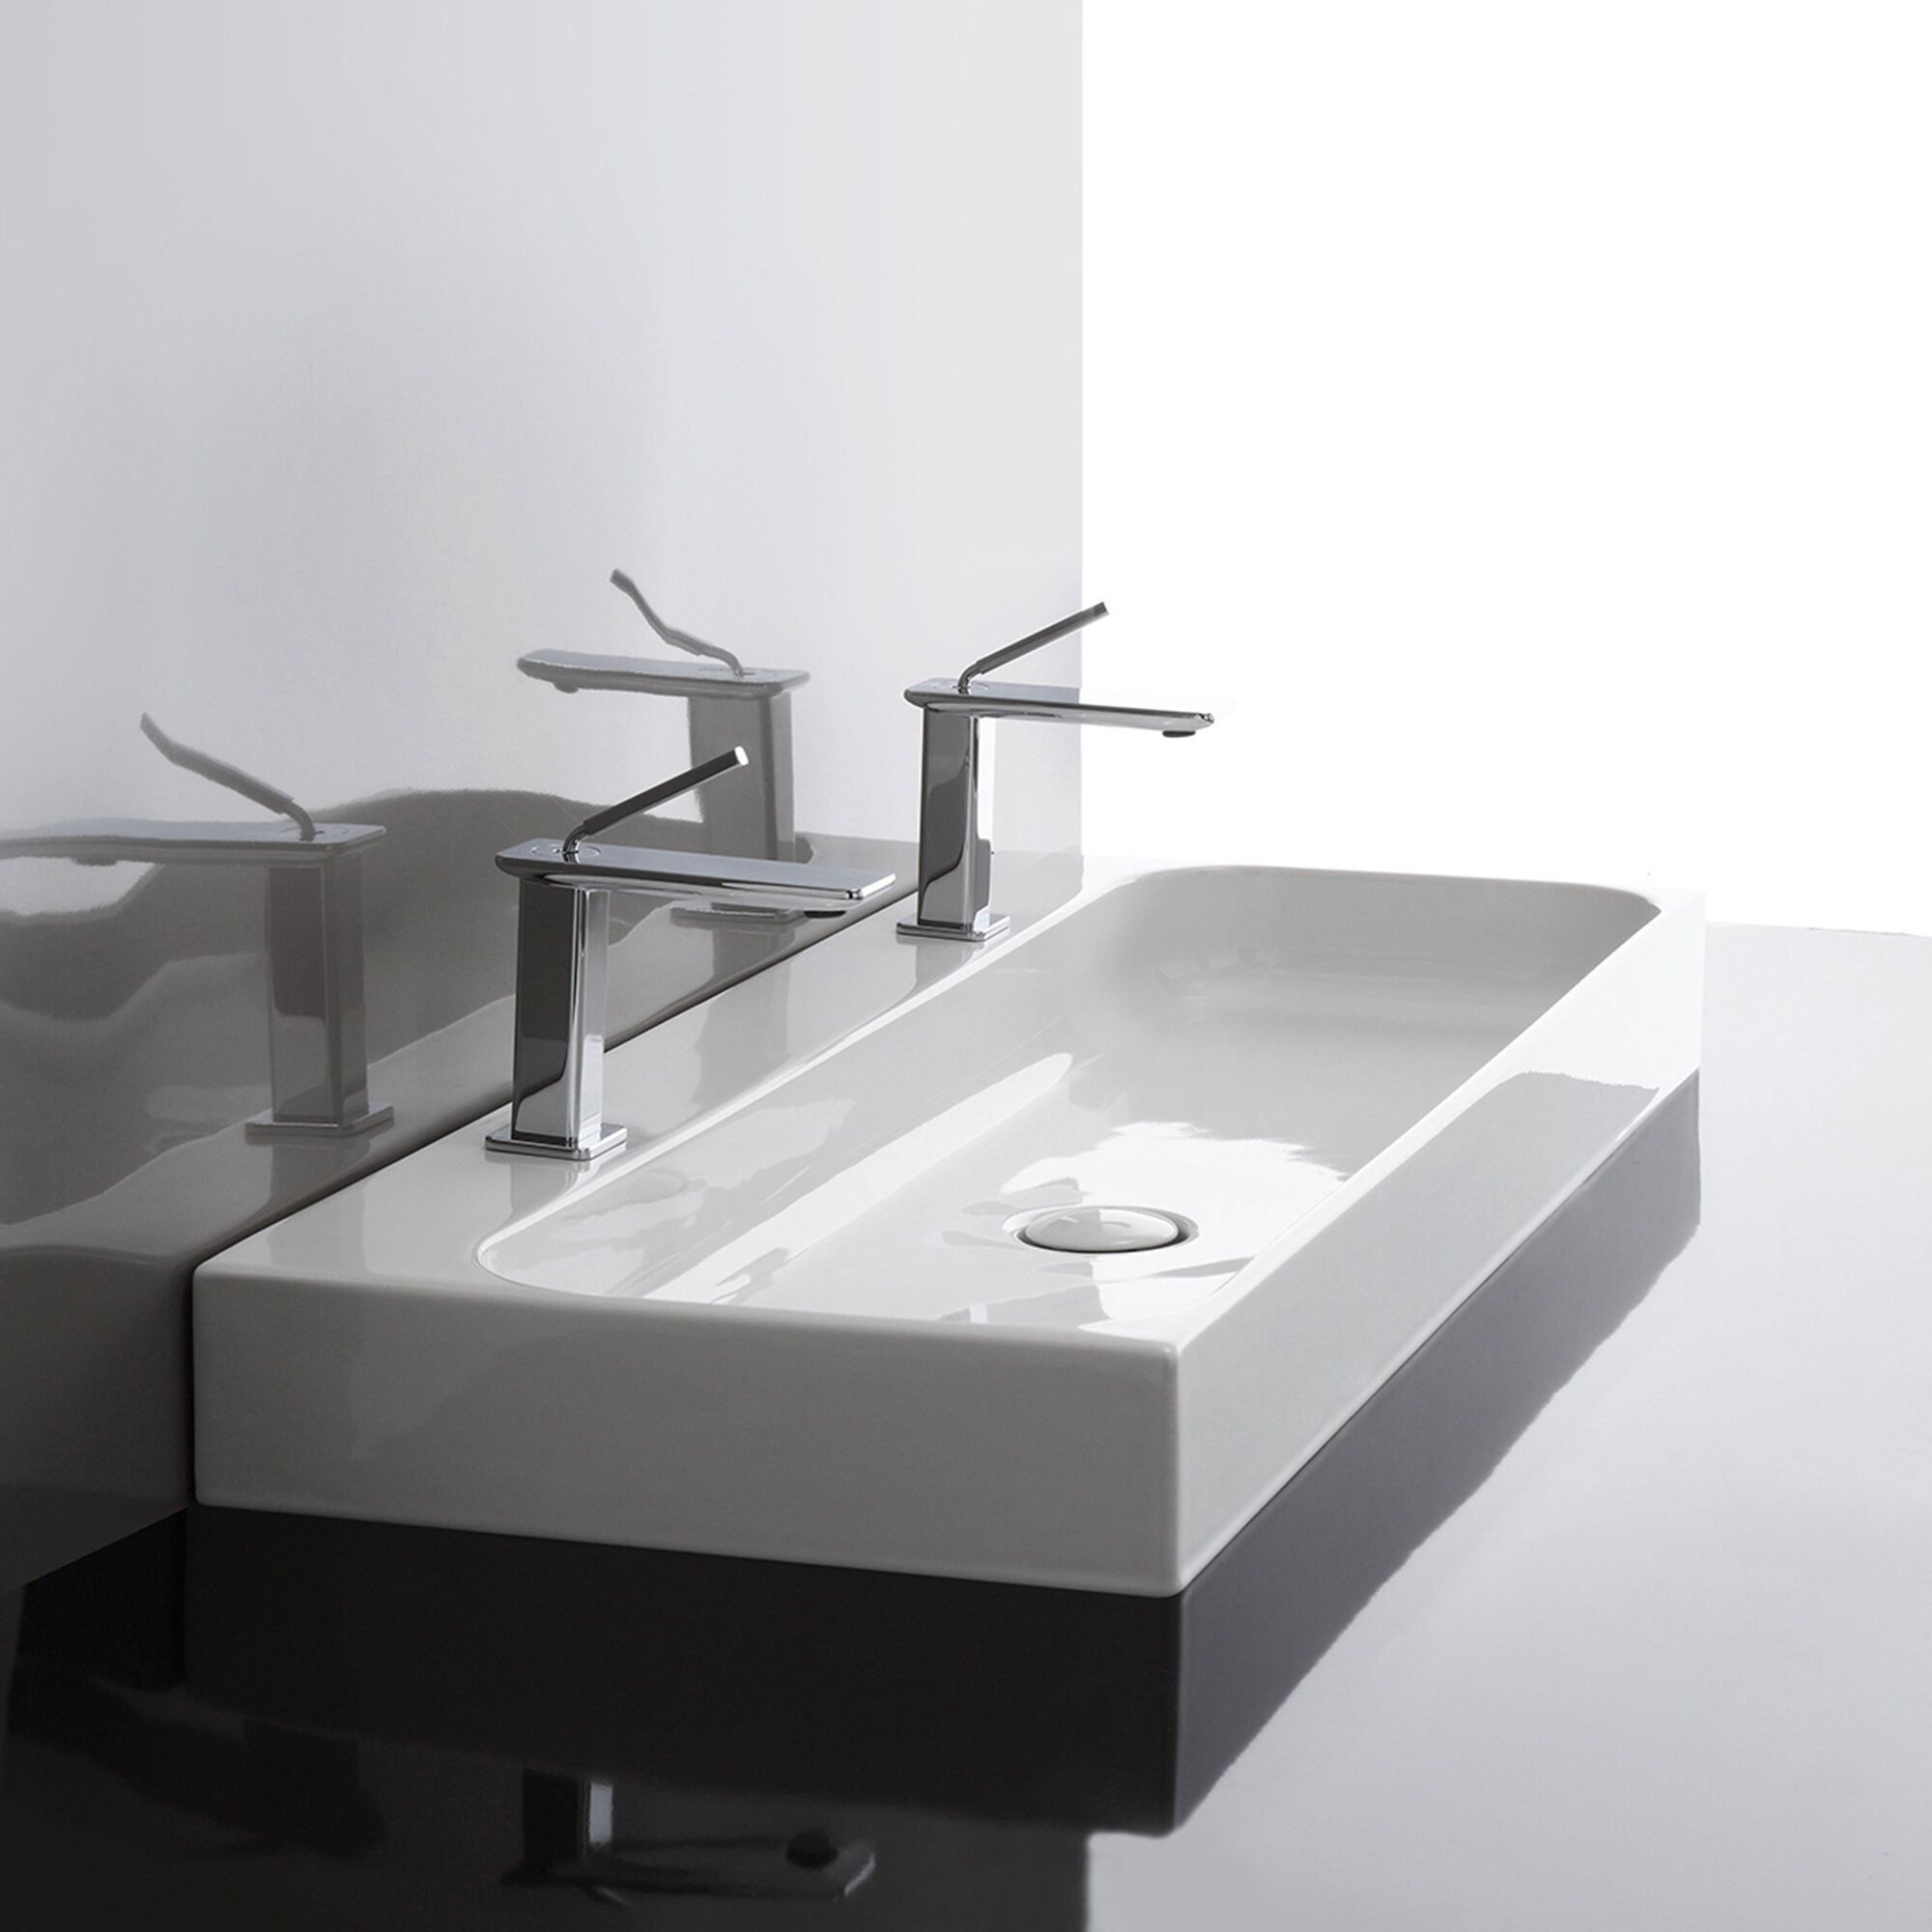 Ws Bath Collections Unit Ceramic 40 Wall Mount Bathroom Sink With Overflow Wayfair